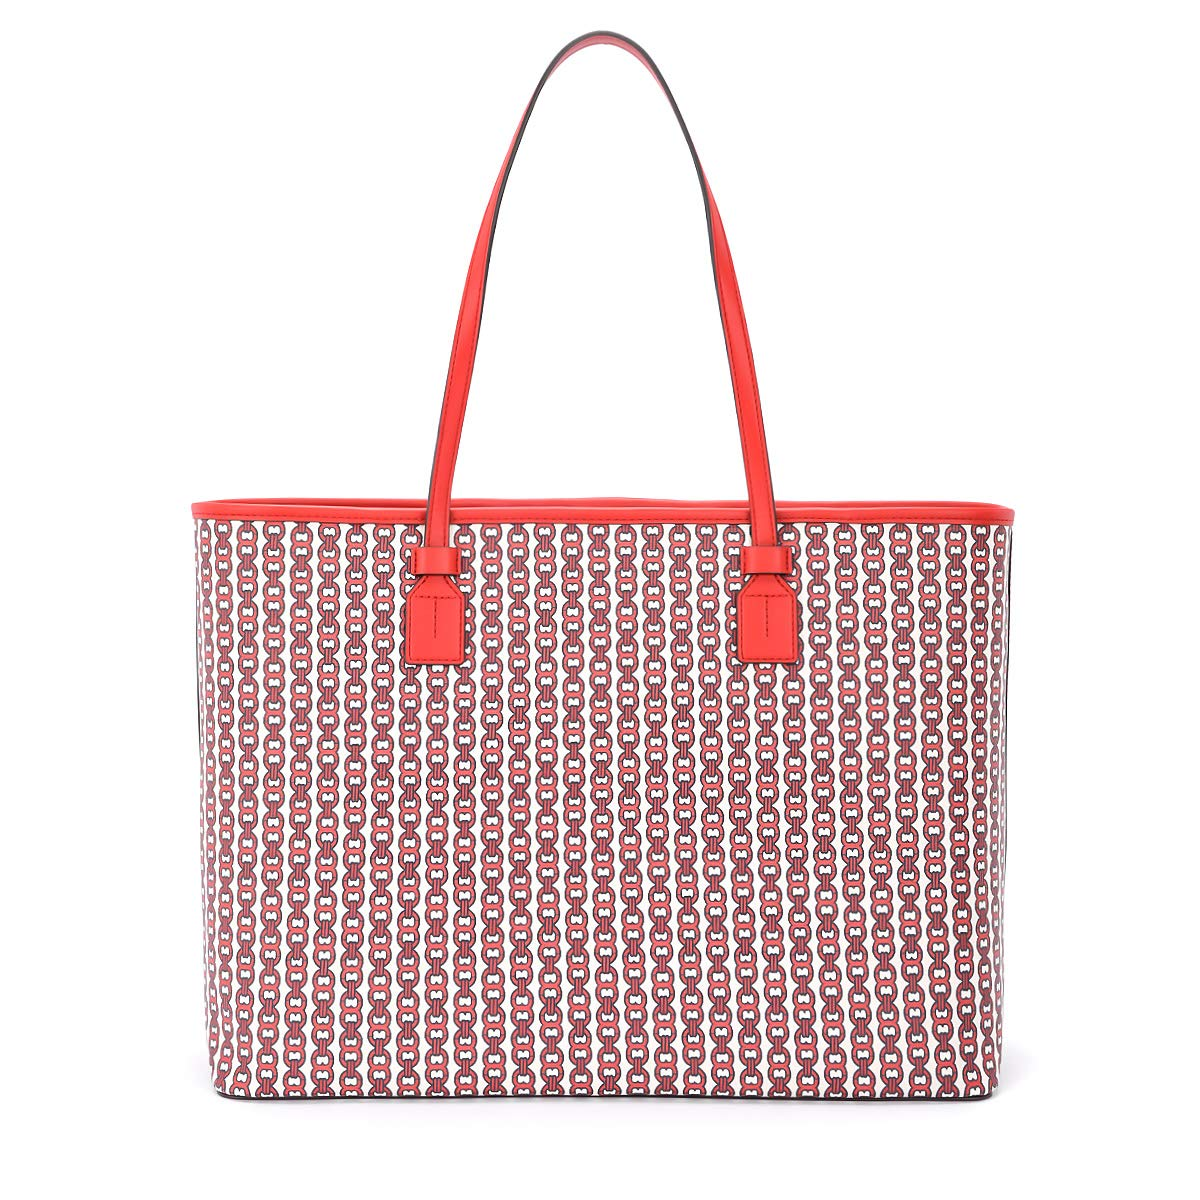 b00356c11 Amazon.com: Tory Burch Gemini Link Small Canvas Tote in Liberty Red:  Clothing